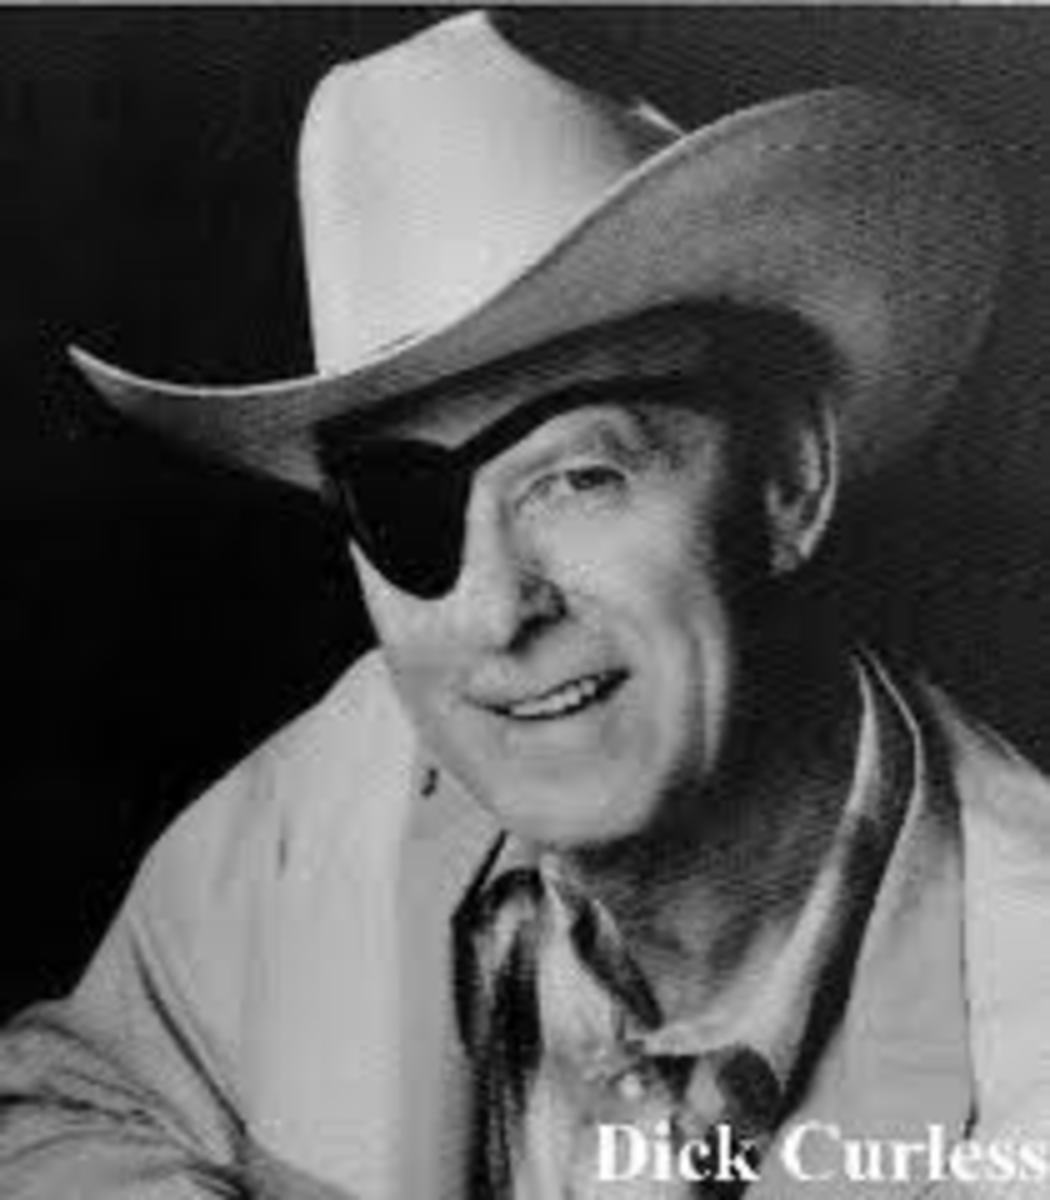 the-forgotten-baron-of-country-music-dick-curless